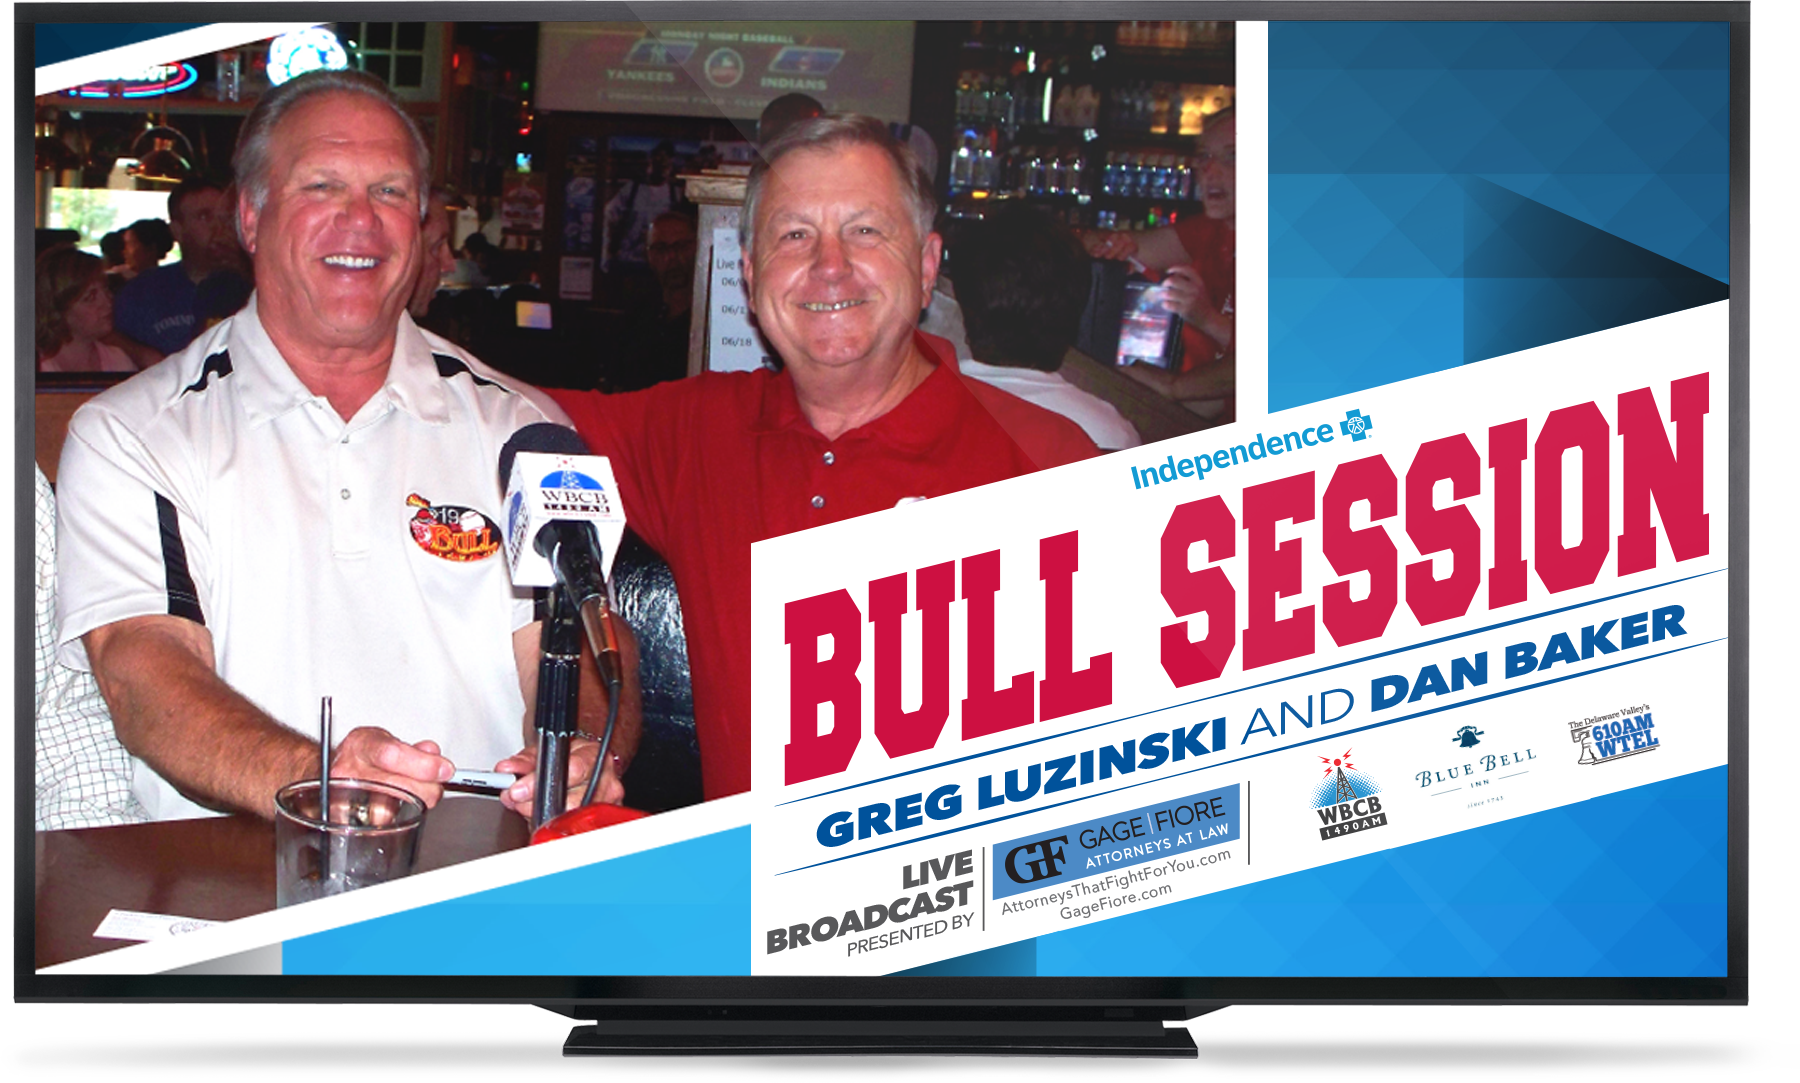 Watch the Independence Blue Cross Bull Session presented by Gage Fiore, Attorneys That Fight For You, with Greg Luzinski and Dan Baker live on WBCB1490.com